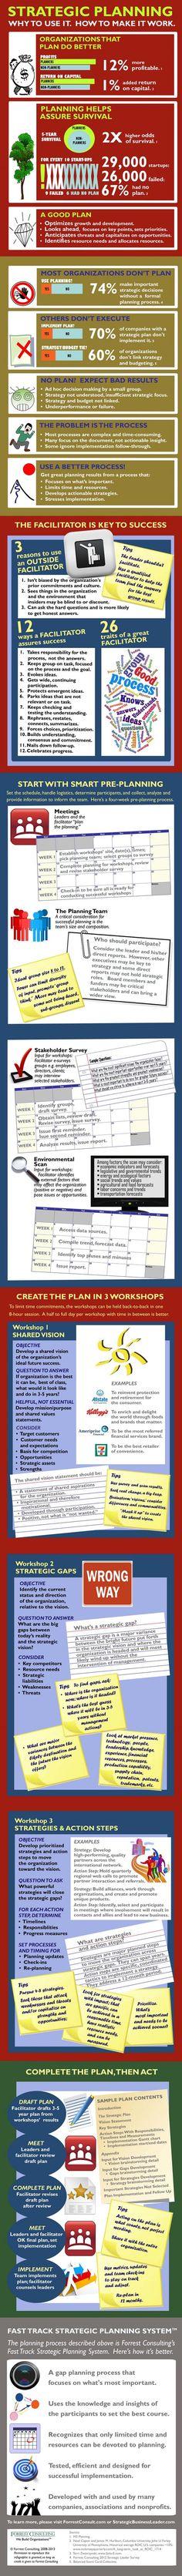 #Strategic #Planning : how to use it, where to make it work